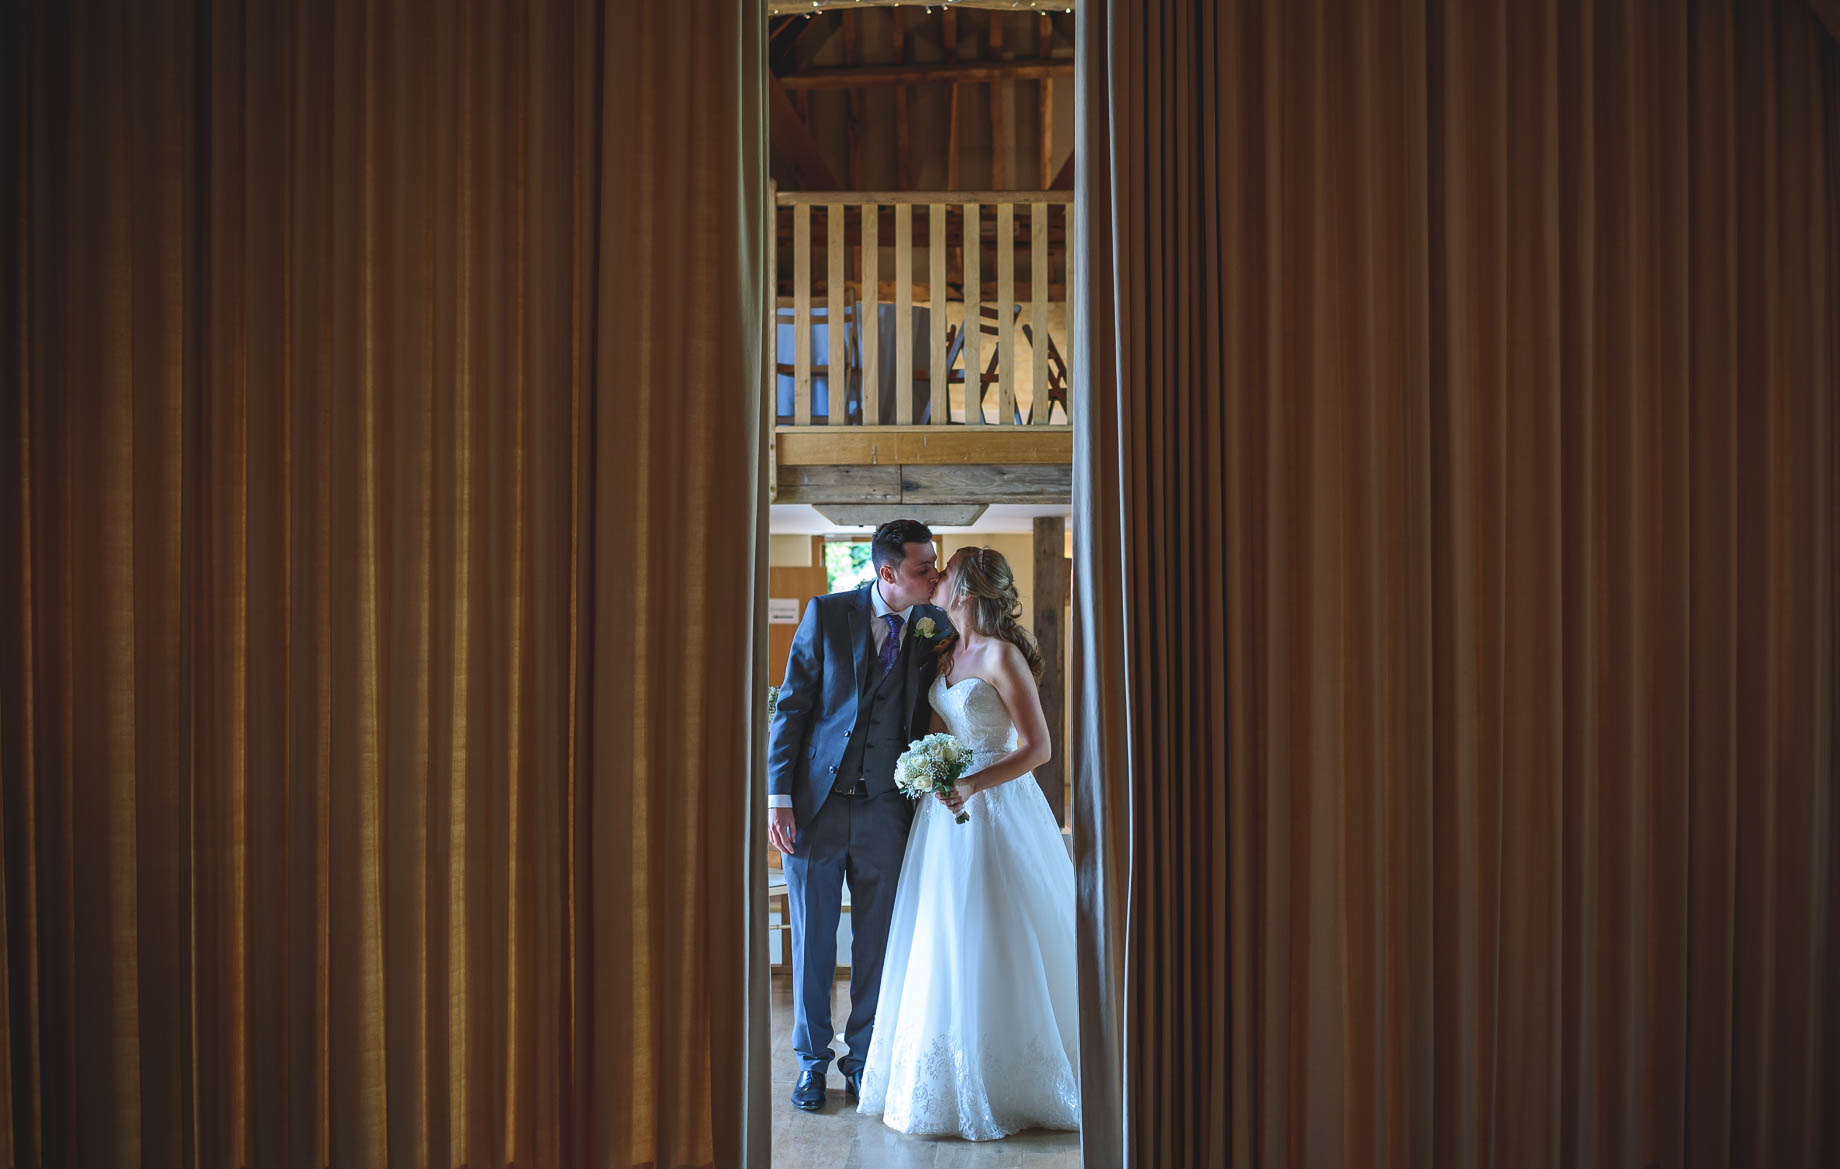 Bury Court Barn wedding photography - Guy Collier - Kirsty and Lewis (114 of 150)